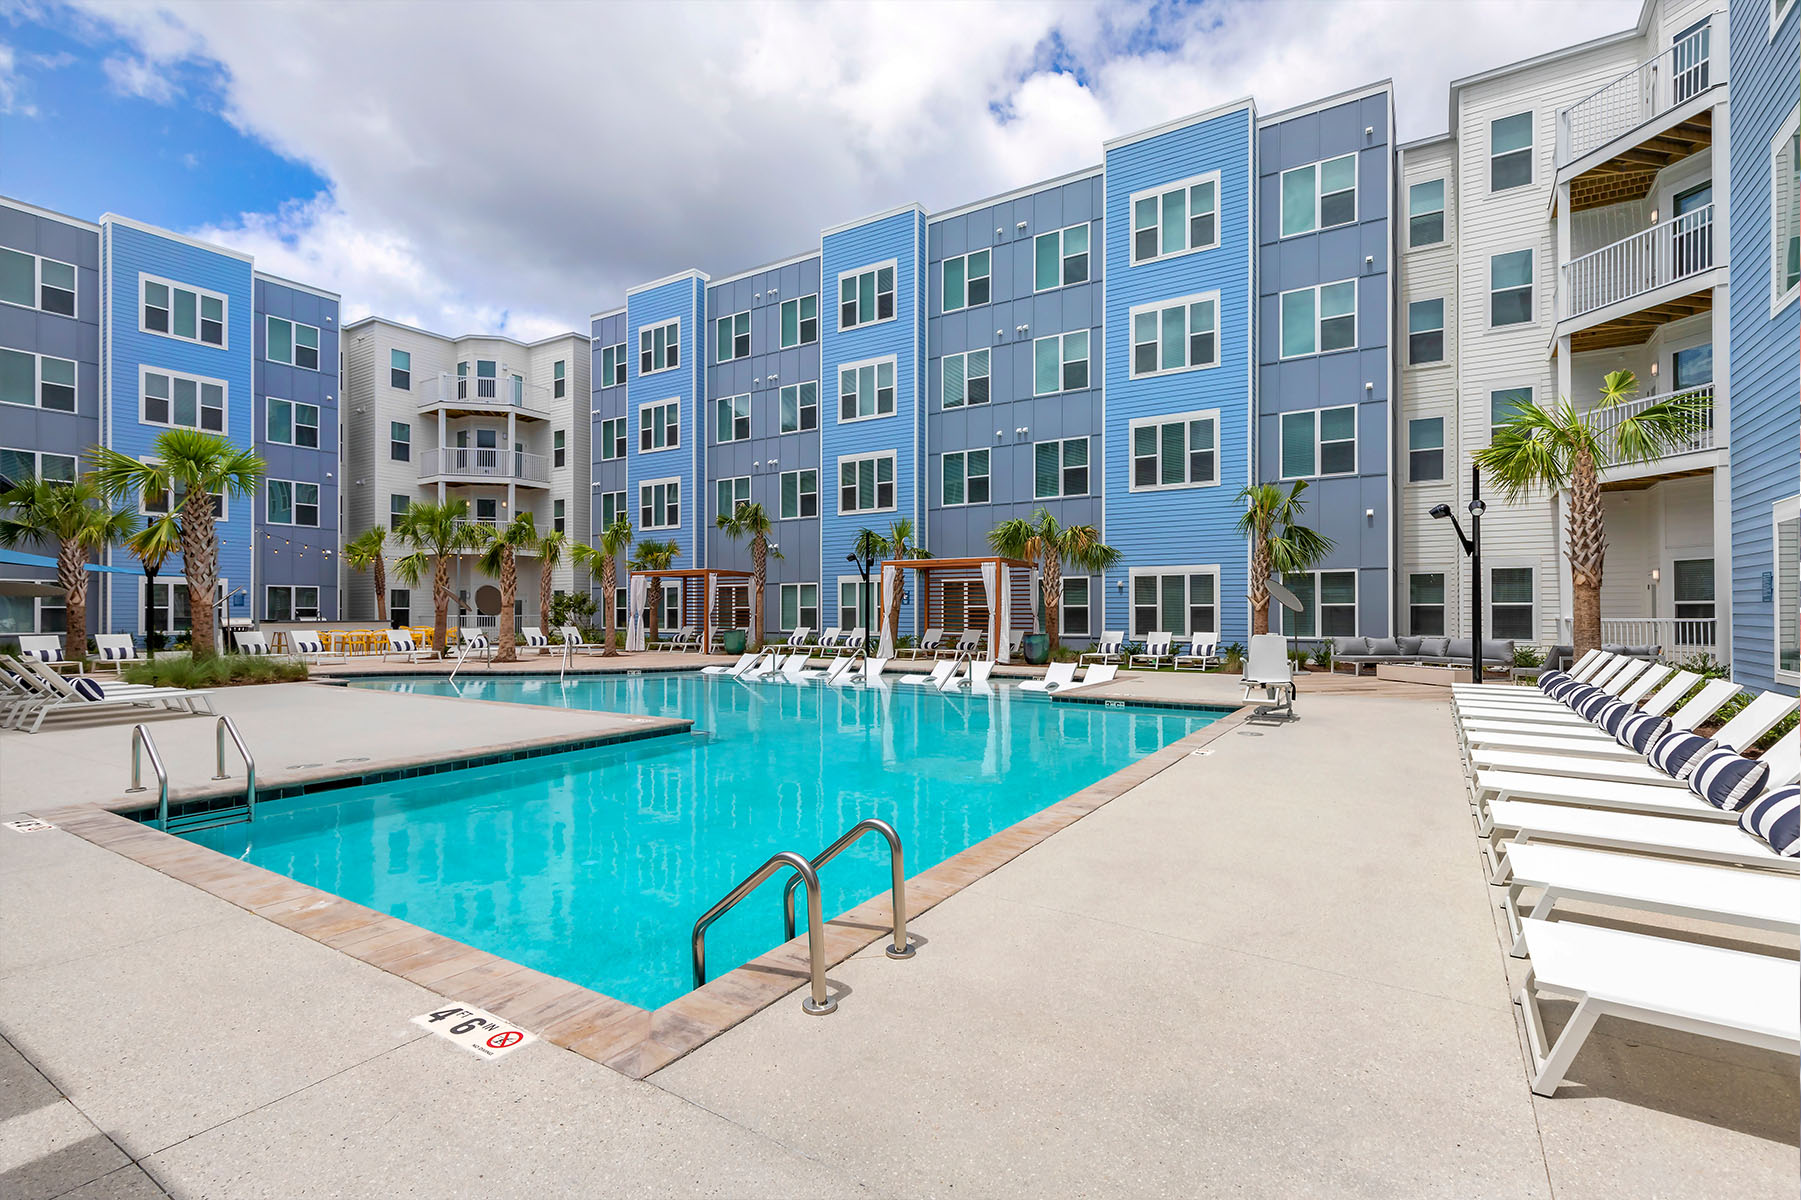 Apartment Community Pool with White Lounge Chairs